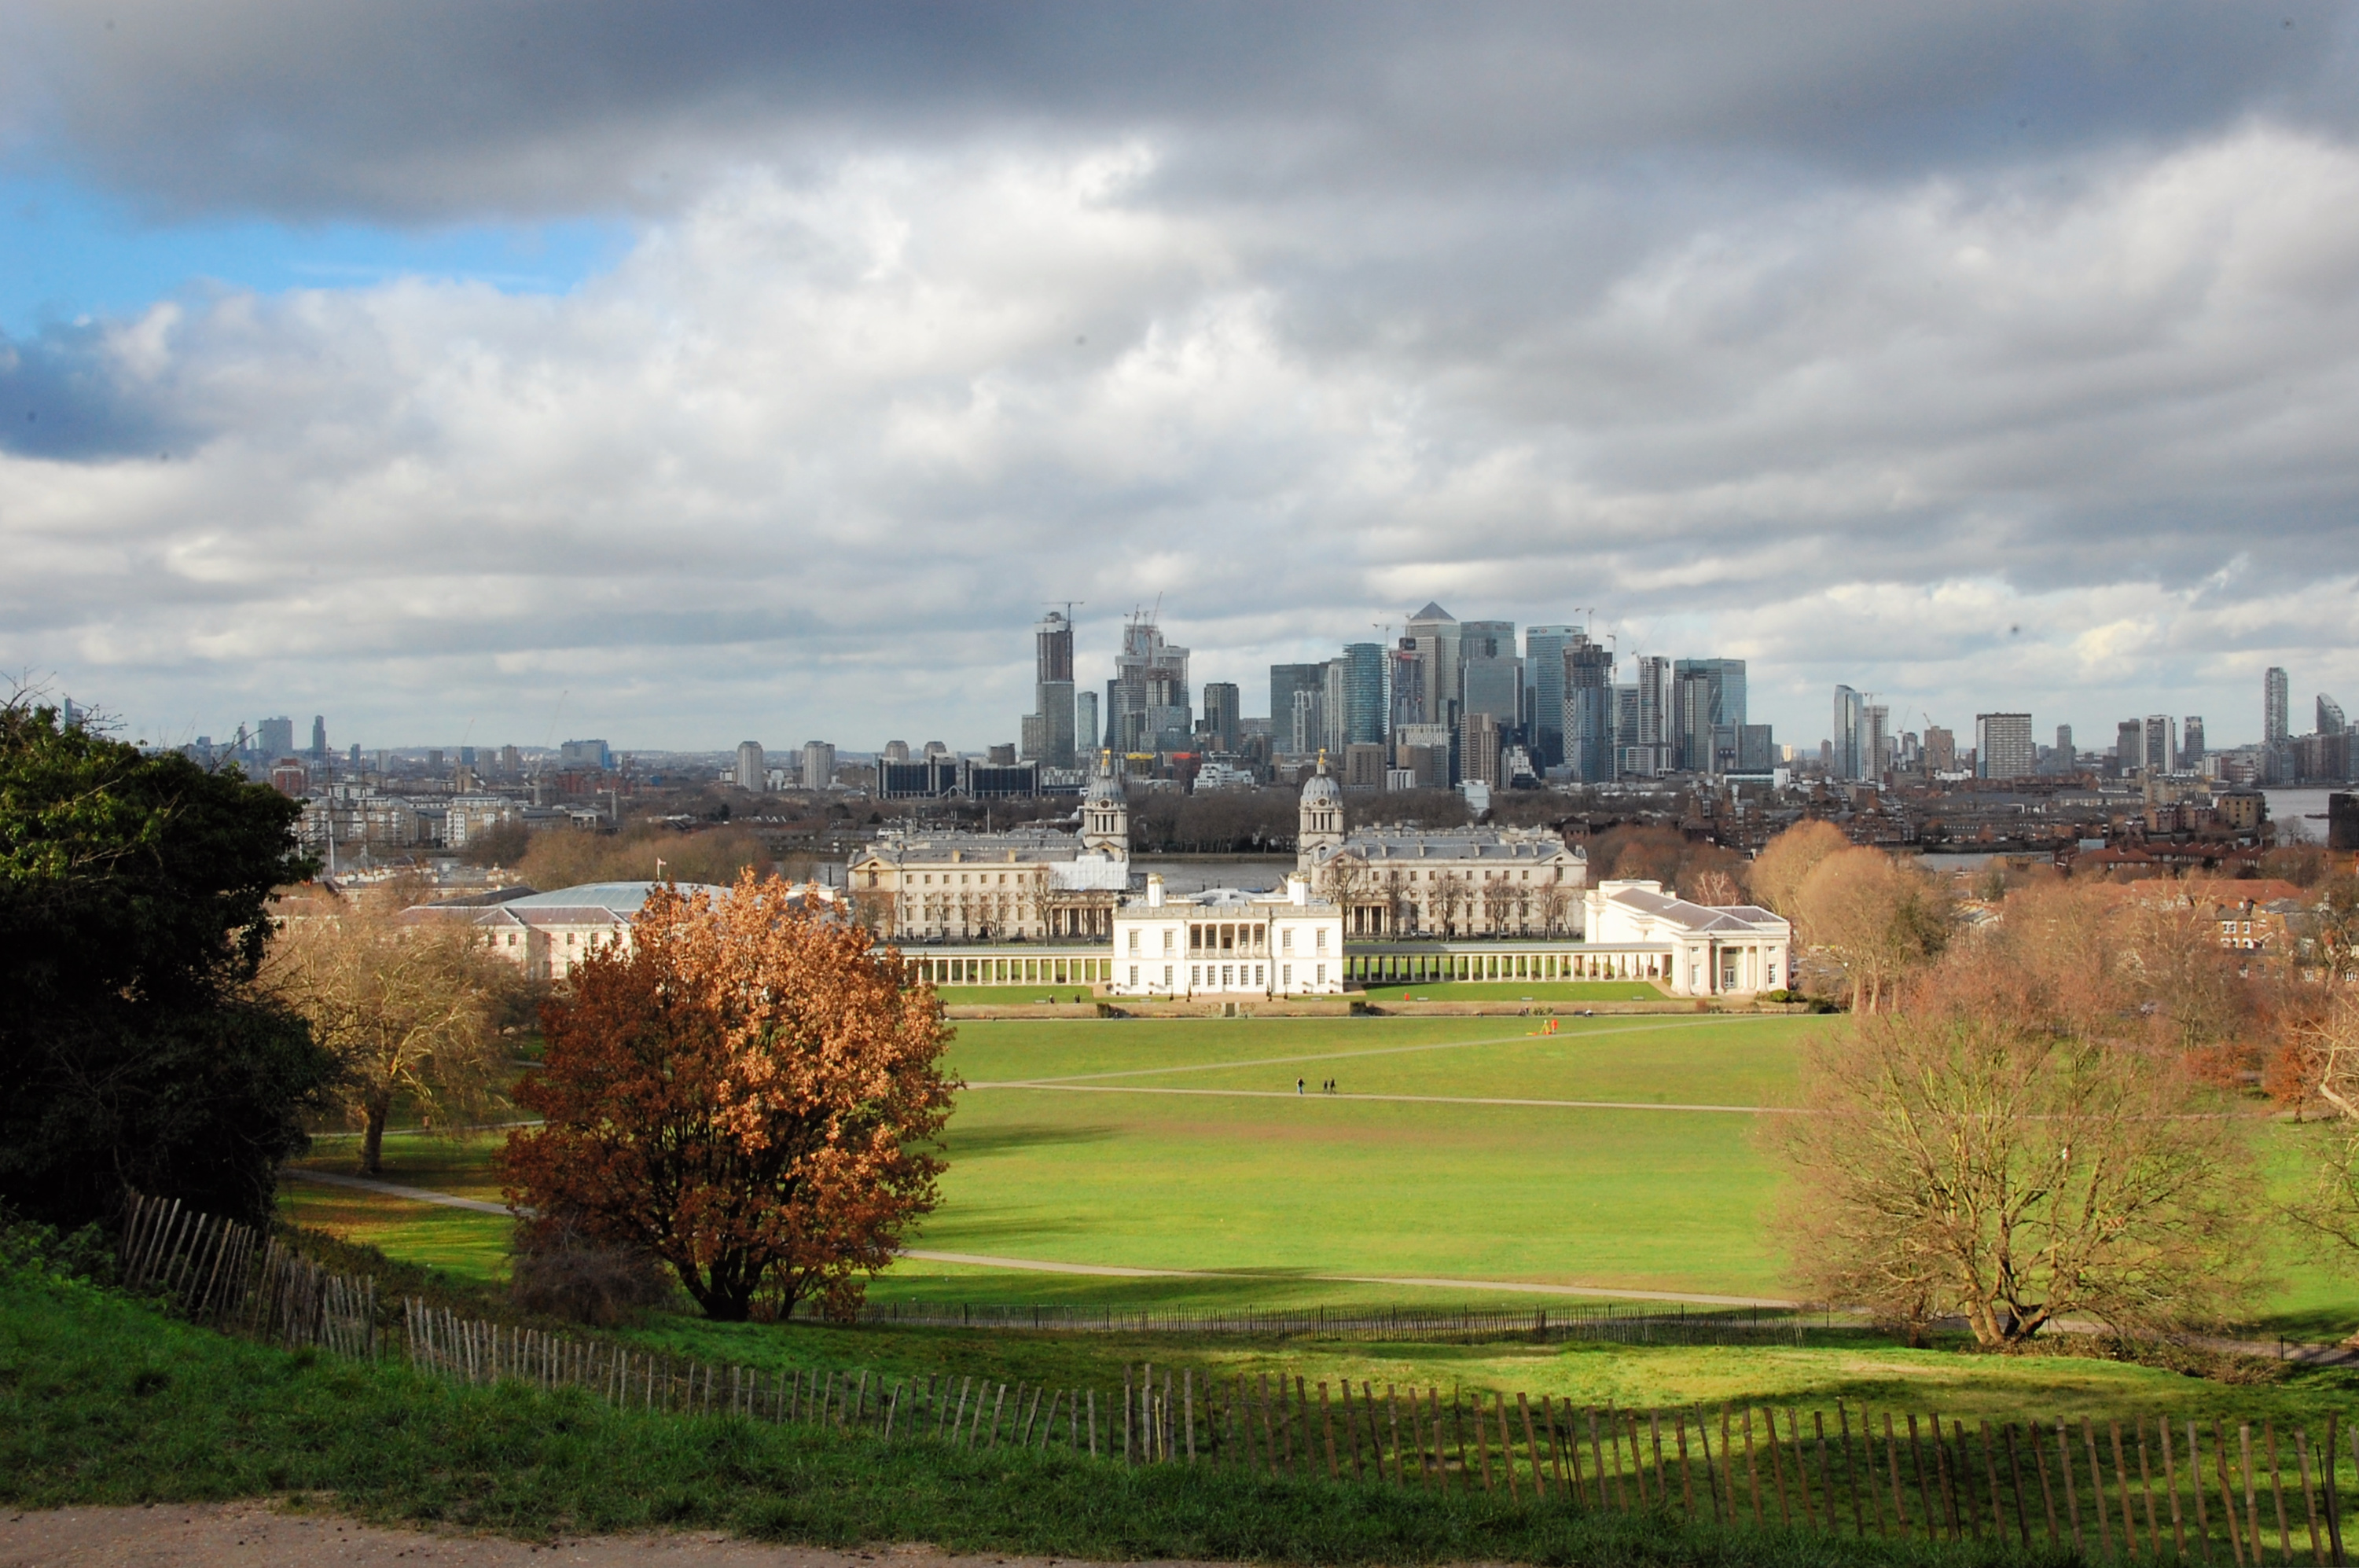 view of London from the Royal Observatory Greenwich